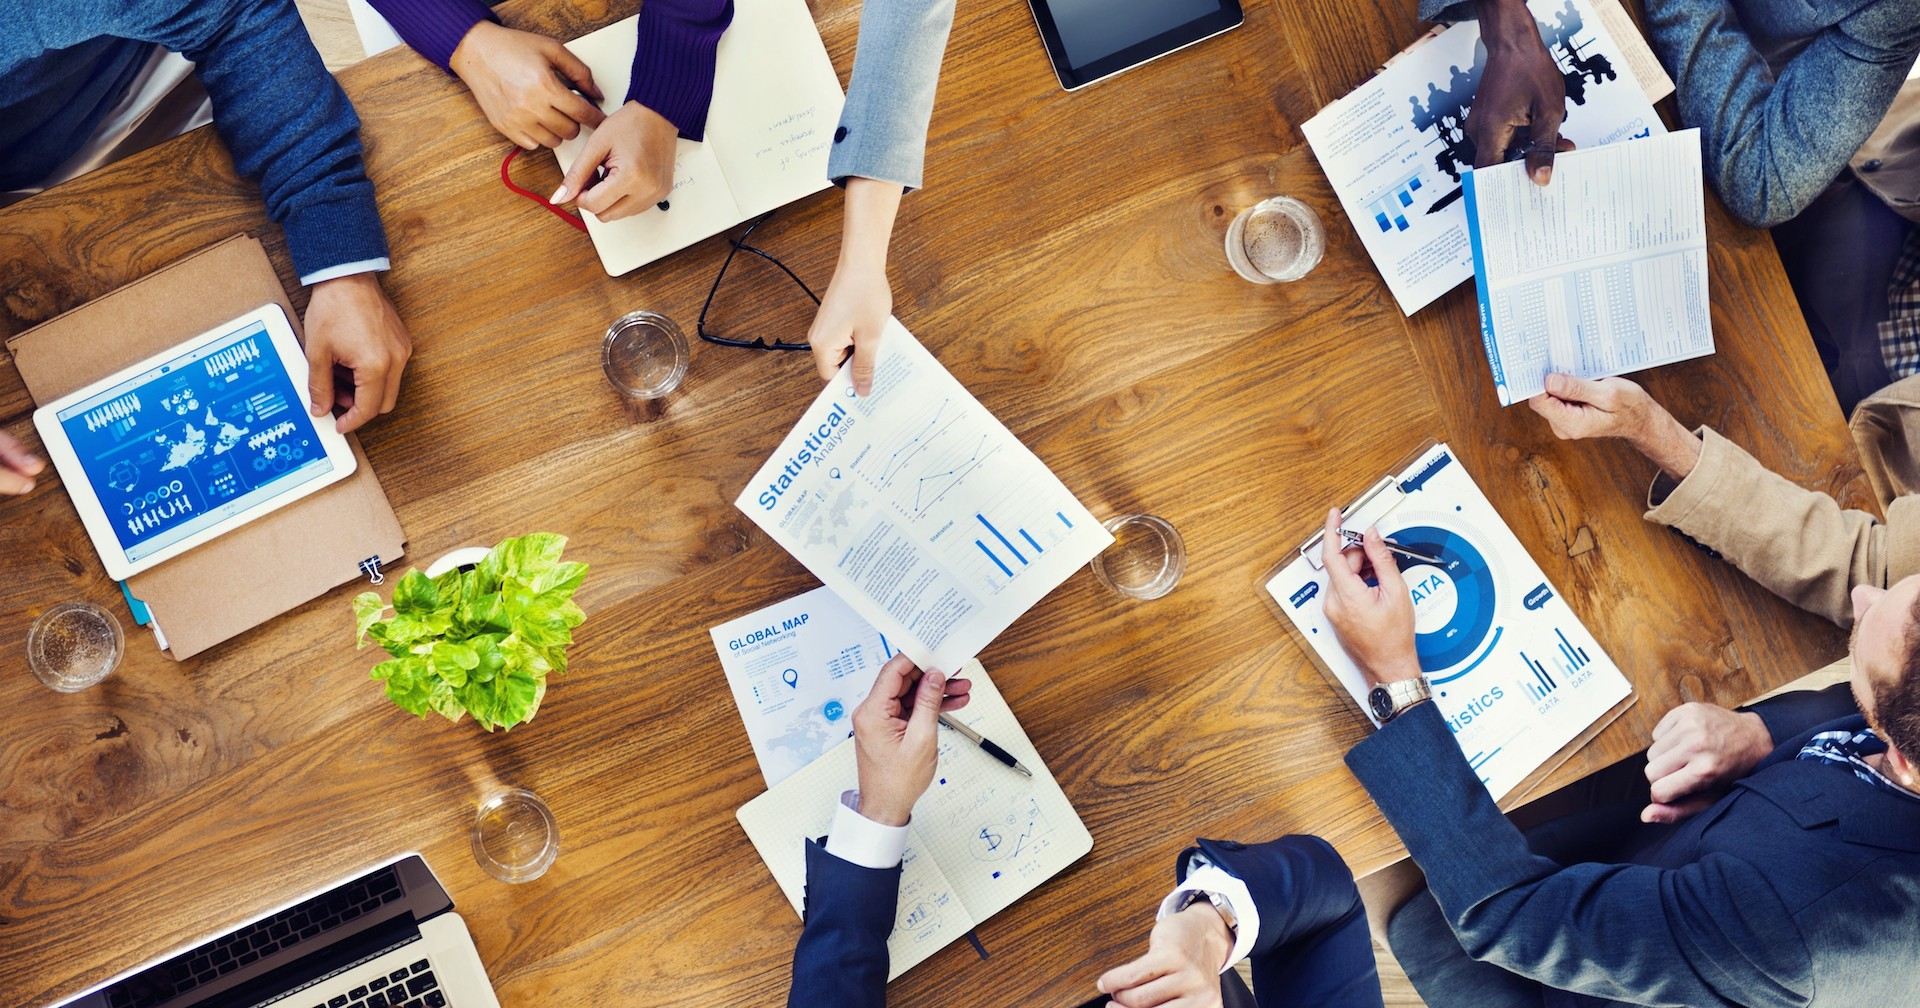 Meetings are expensive  Minimize them  - By